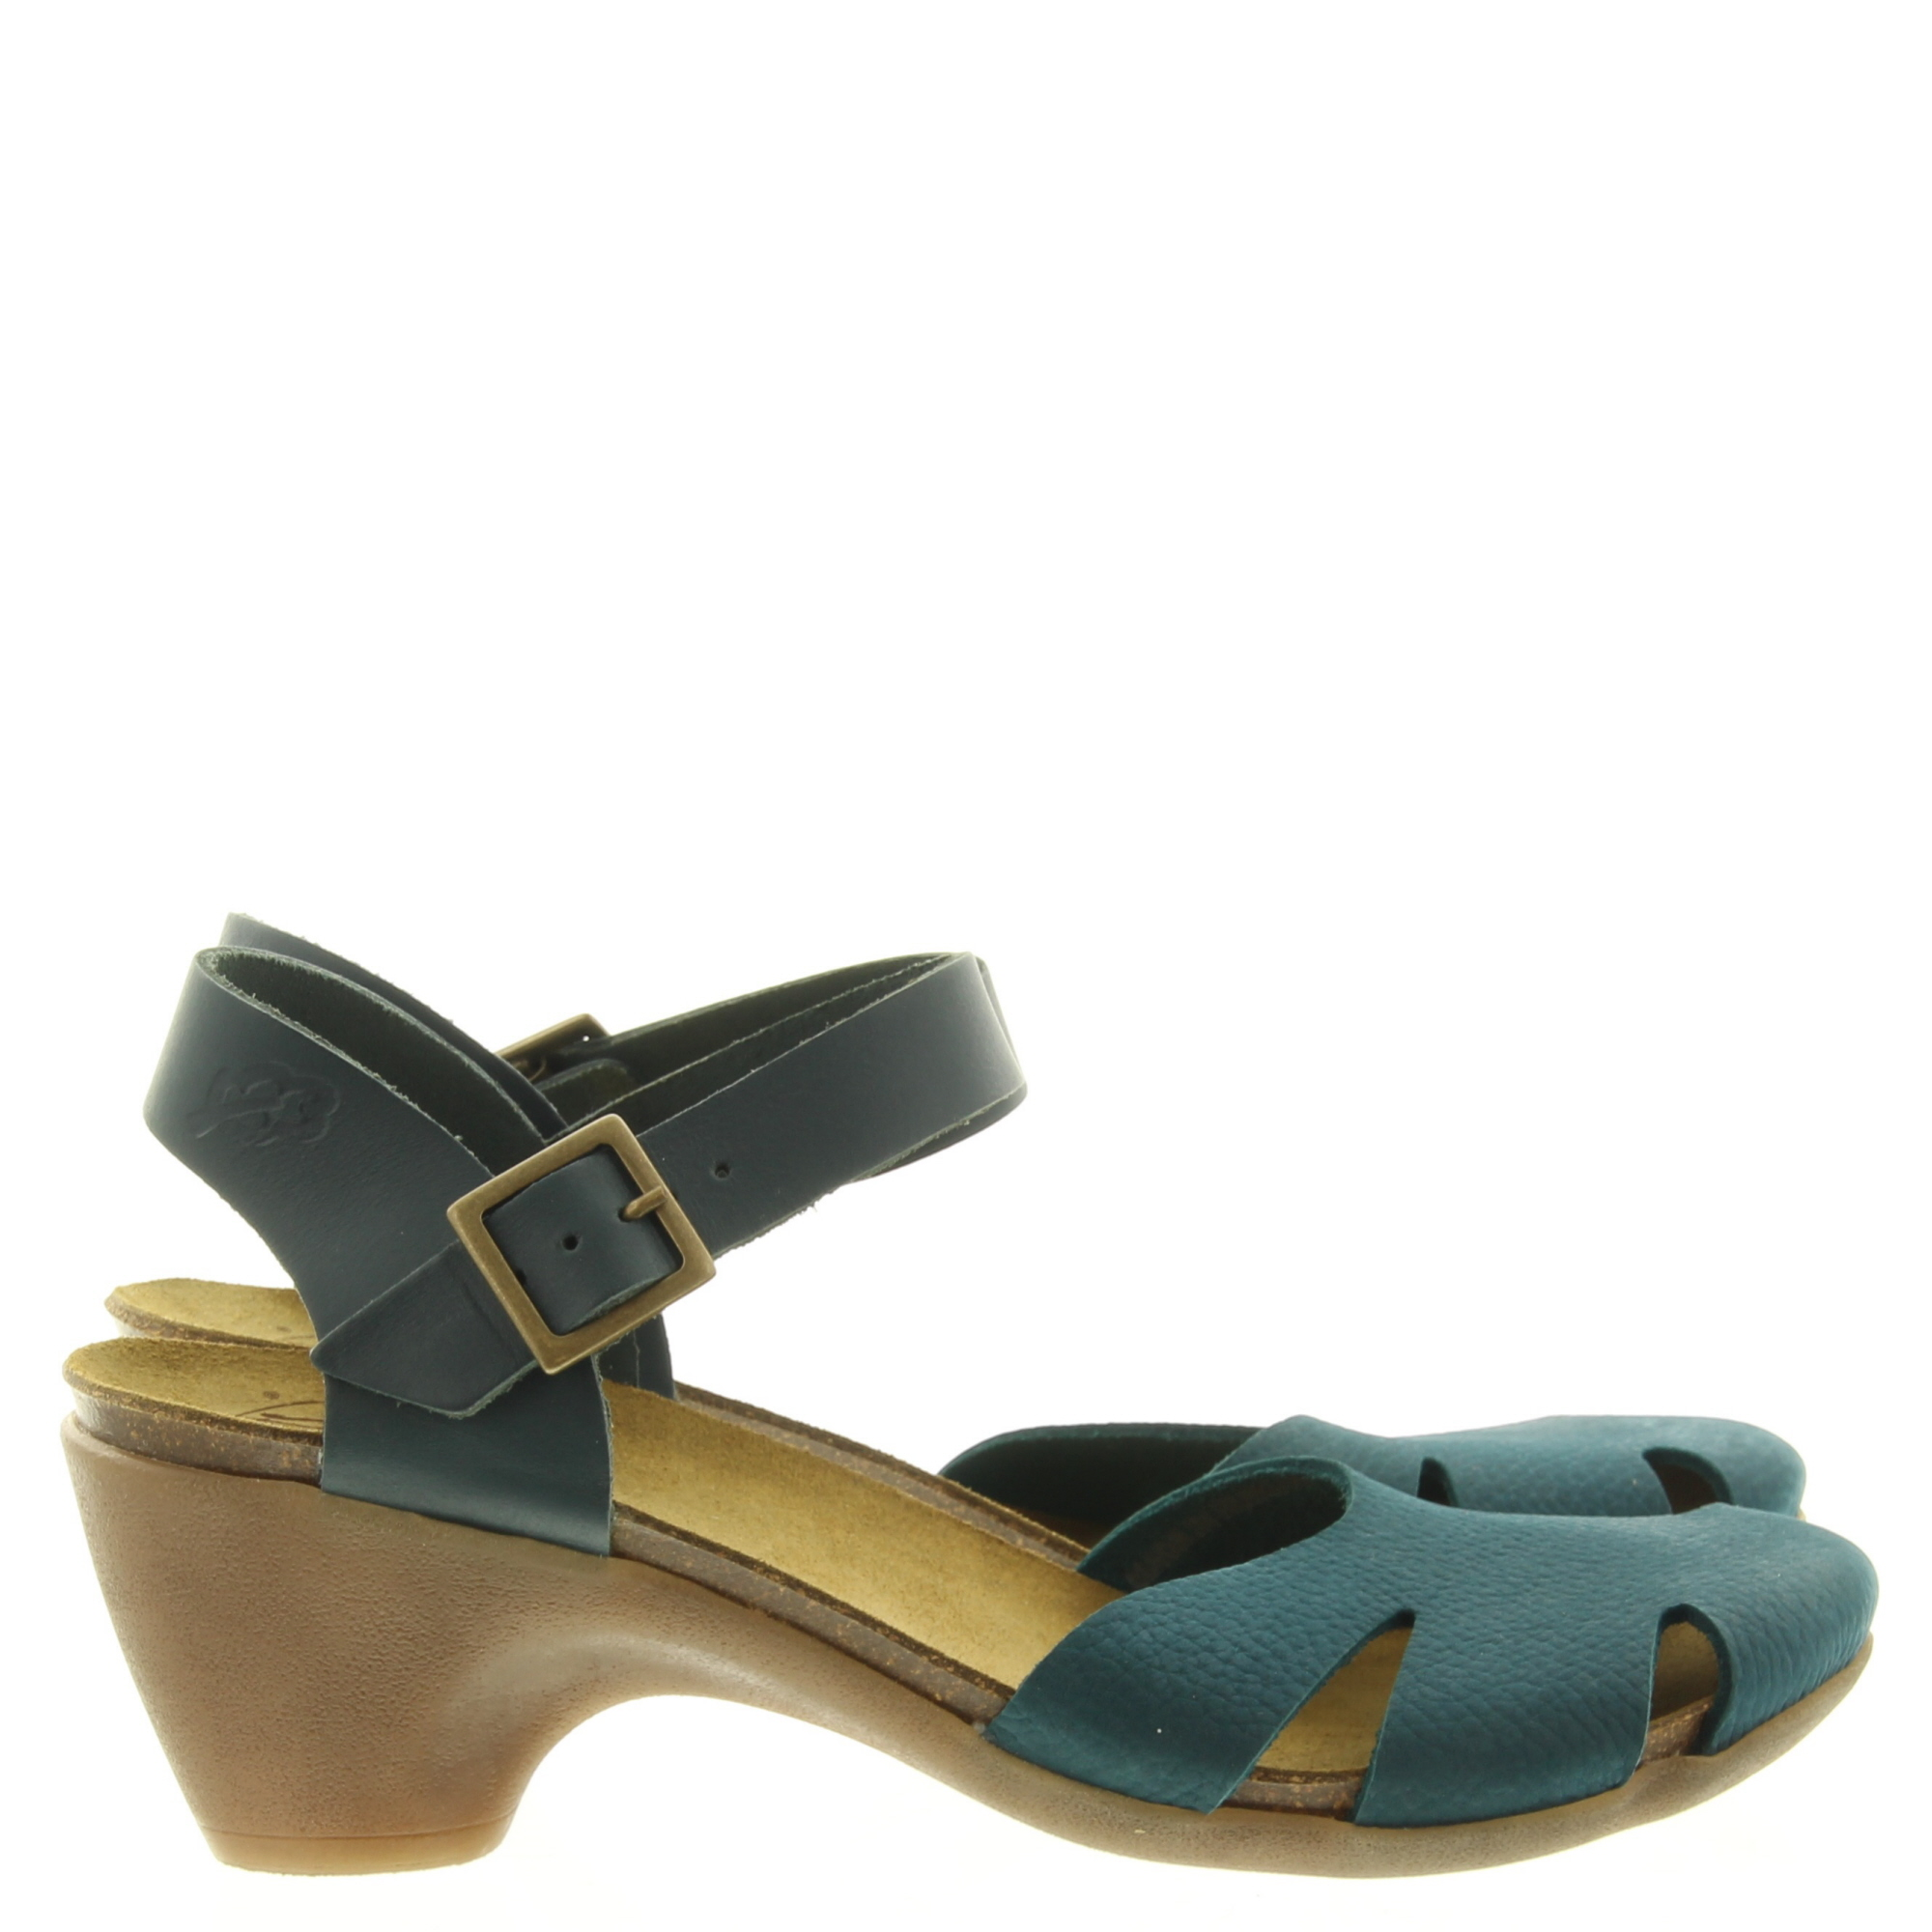 Loints 52866 Notendaal 1947 Turquoise/Petrol